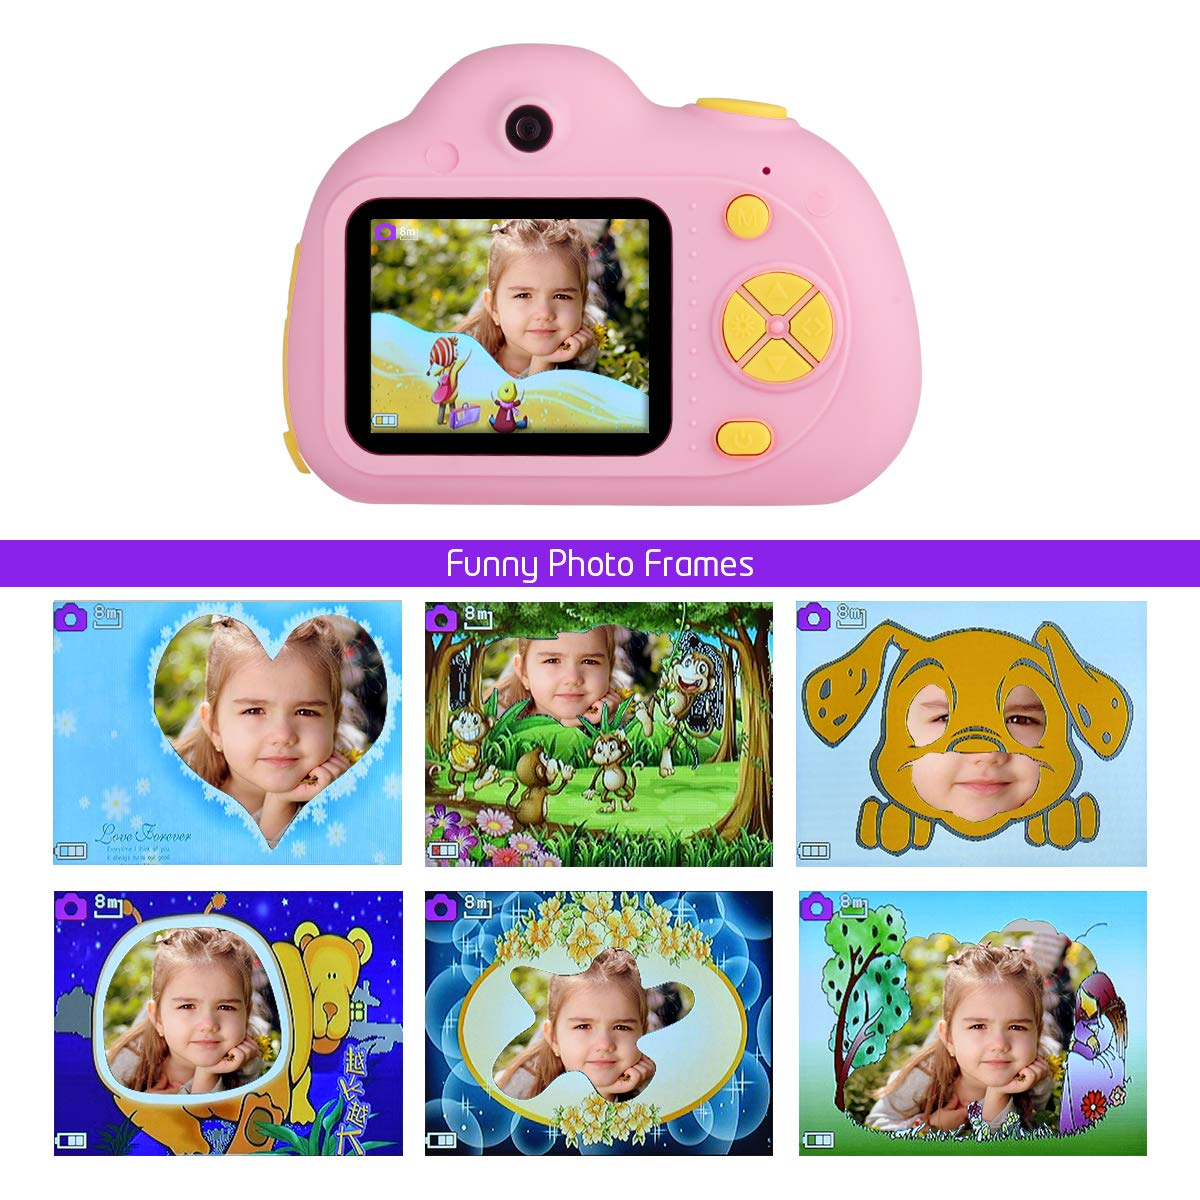 Funkprofi Kids Camera 1080P 8MP Front & Rear Camera Clear Digital Recorder Camcorder for Kids, Selfie Function, Funny Frames, Face Recognition, Support 32GB Memory Card, Best Gift for Boys and Girls by Funkprofi (Image #4)